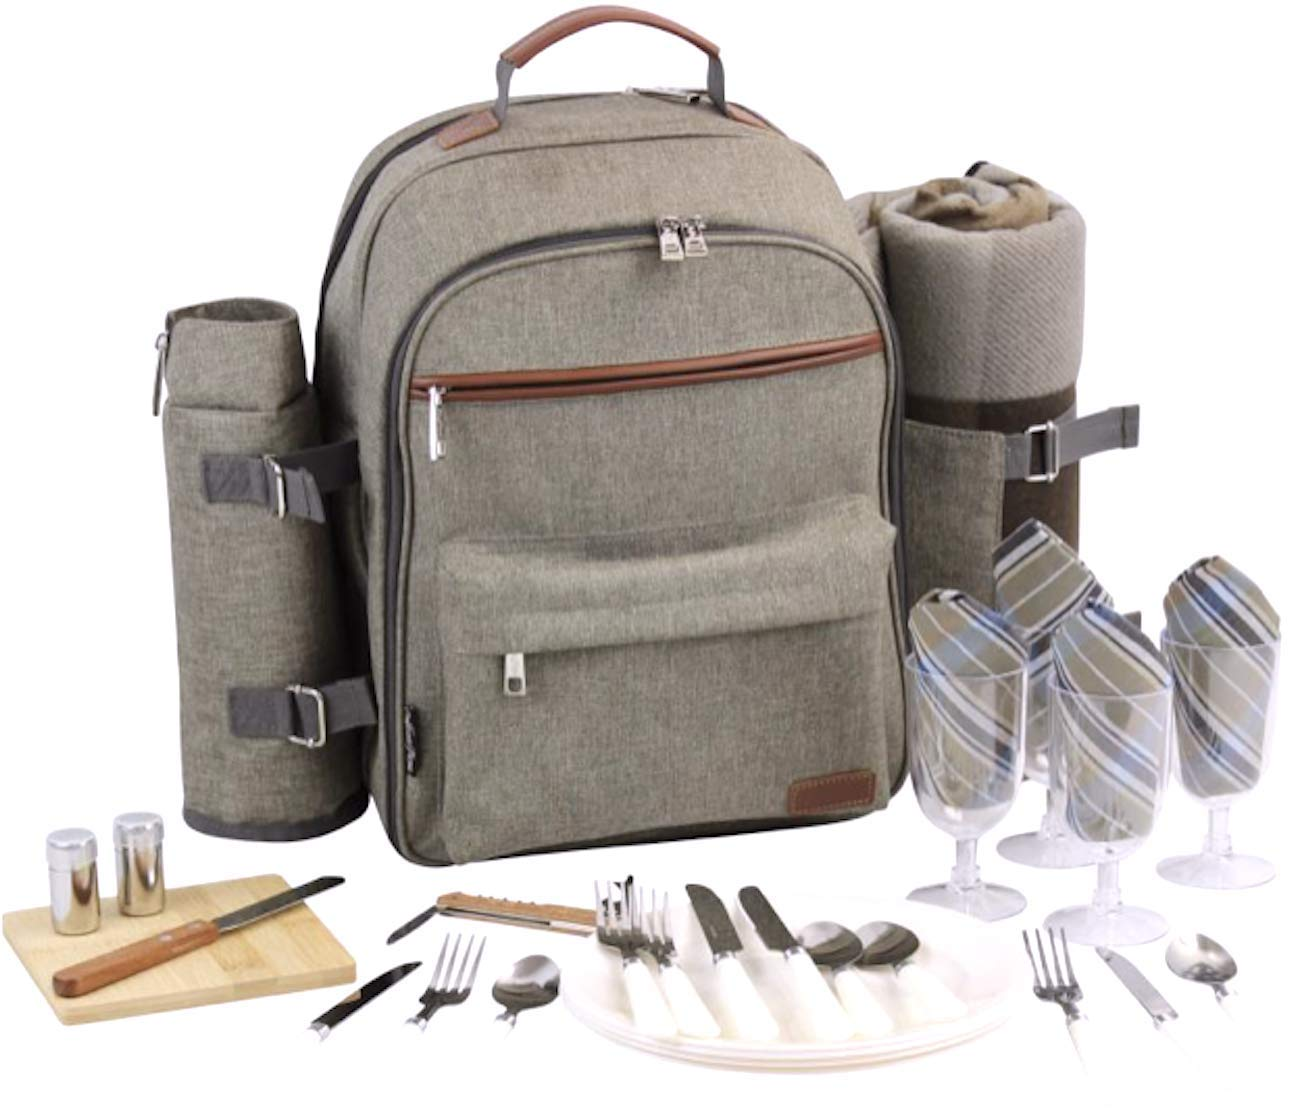 Picnic Backpack for 4   Picnic Basket   Stylish All-in-One Portable Picnic Bag with Complete Cutlery Set, Stainless Steel S/P Shakers   Picnic Blanket Waterproof Extra Large  Cooler Bag for Camping by CALIFORNIA PICNIC